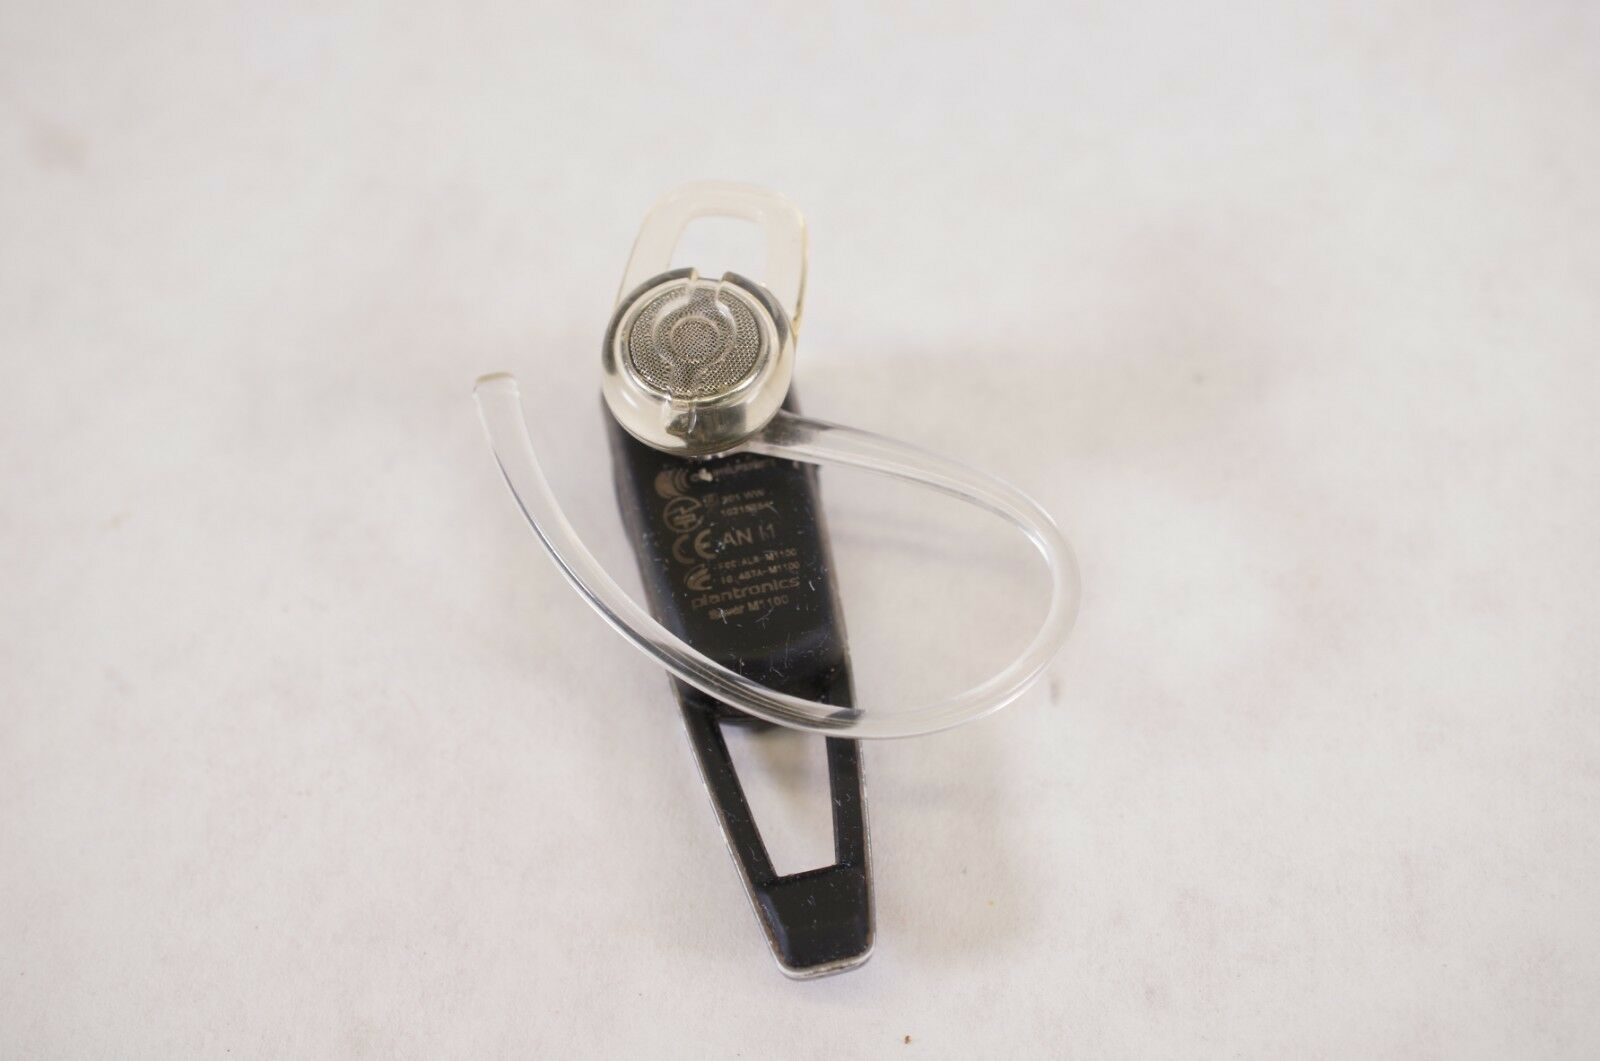 Plantronics Savor M1100 Bluetooth Wireless Headset - Headset Only